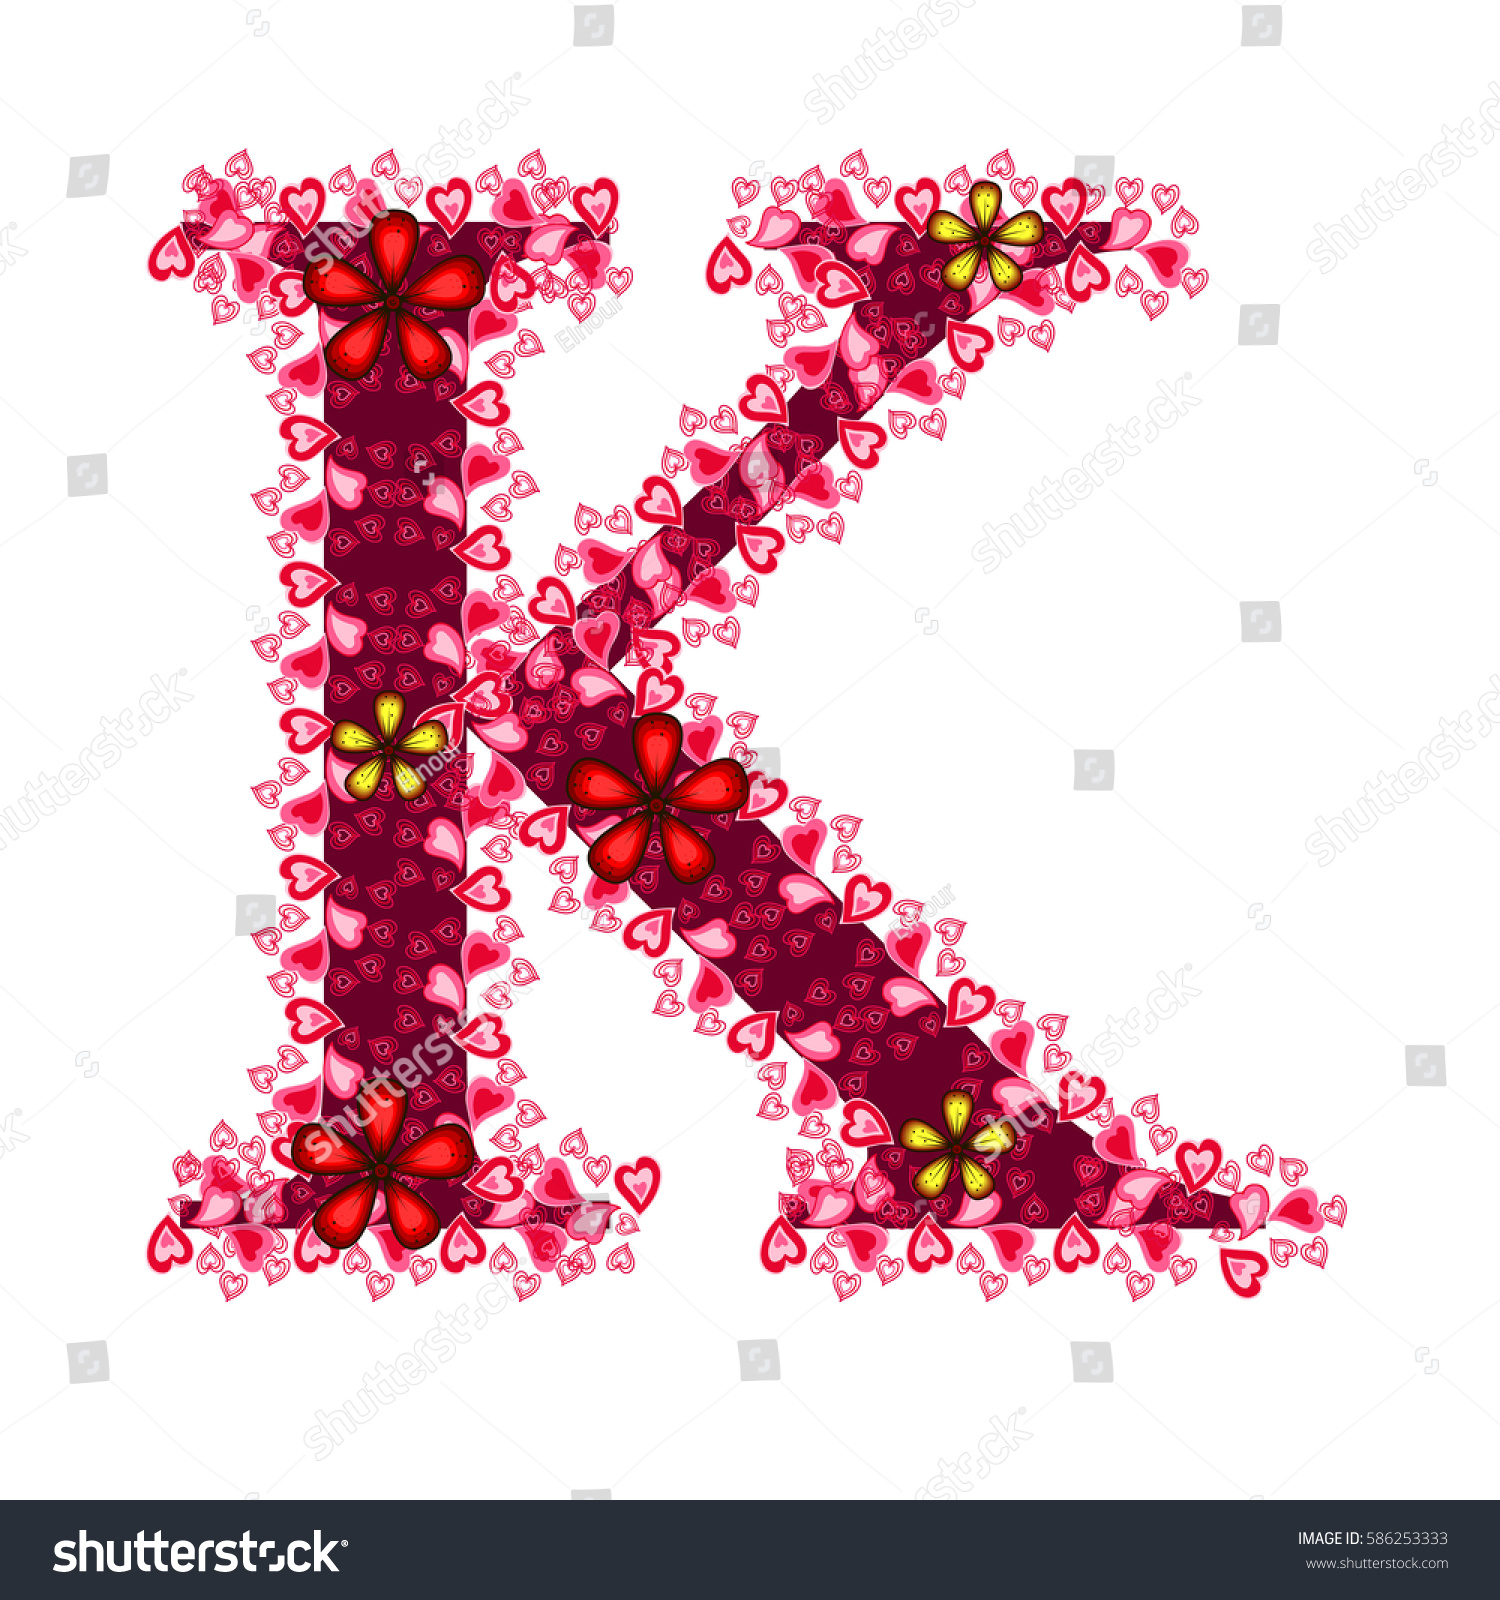 Alphabet Hearts K Red Letter Hearts Stock Vector (Royalty Free ...